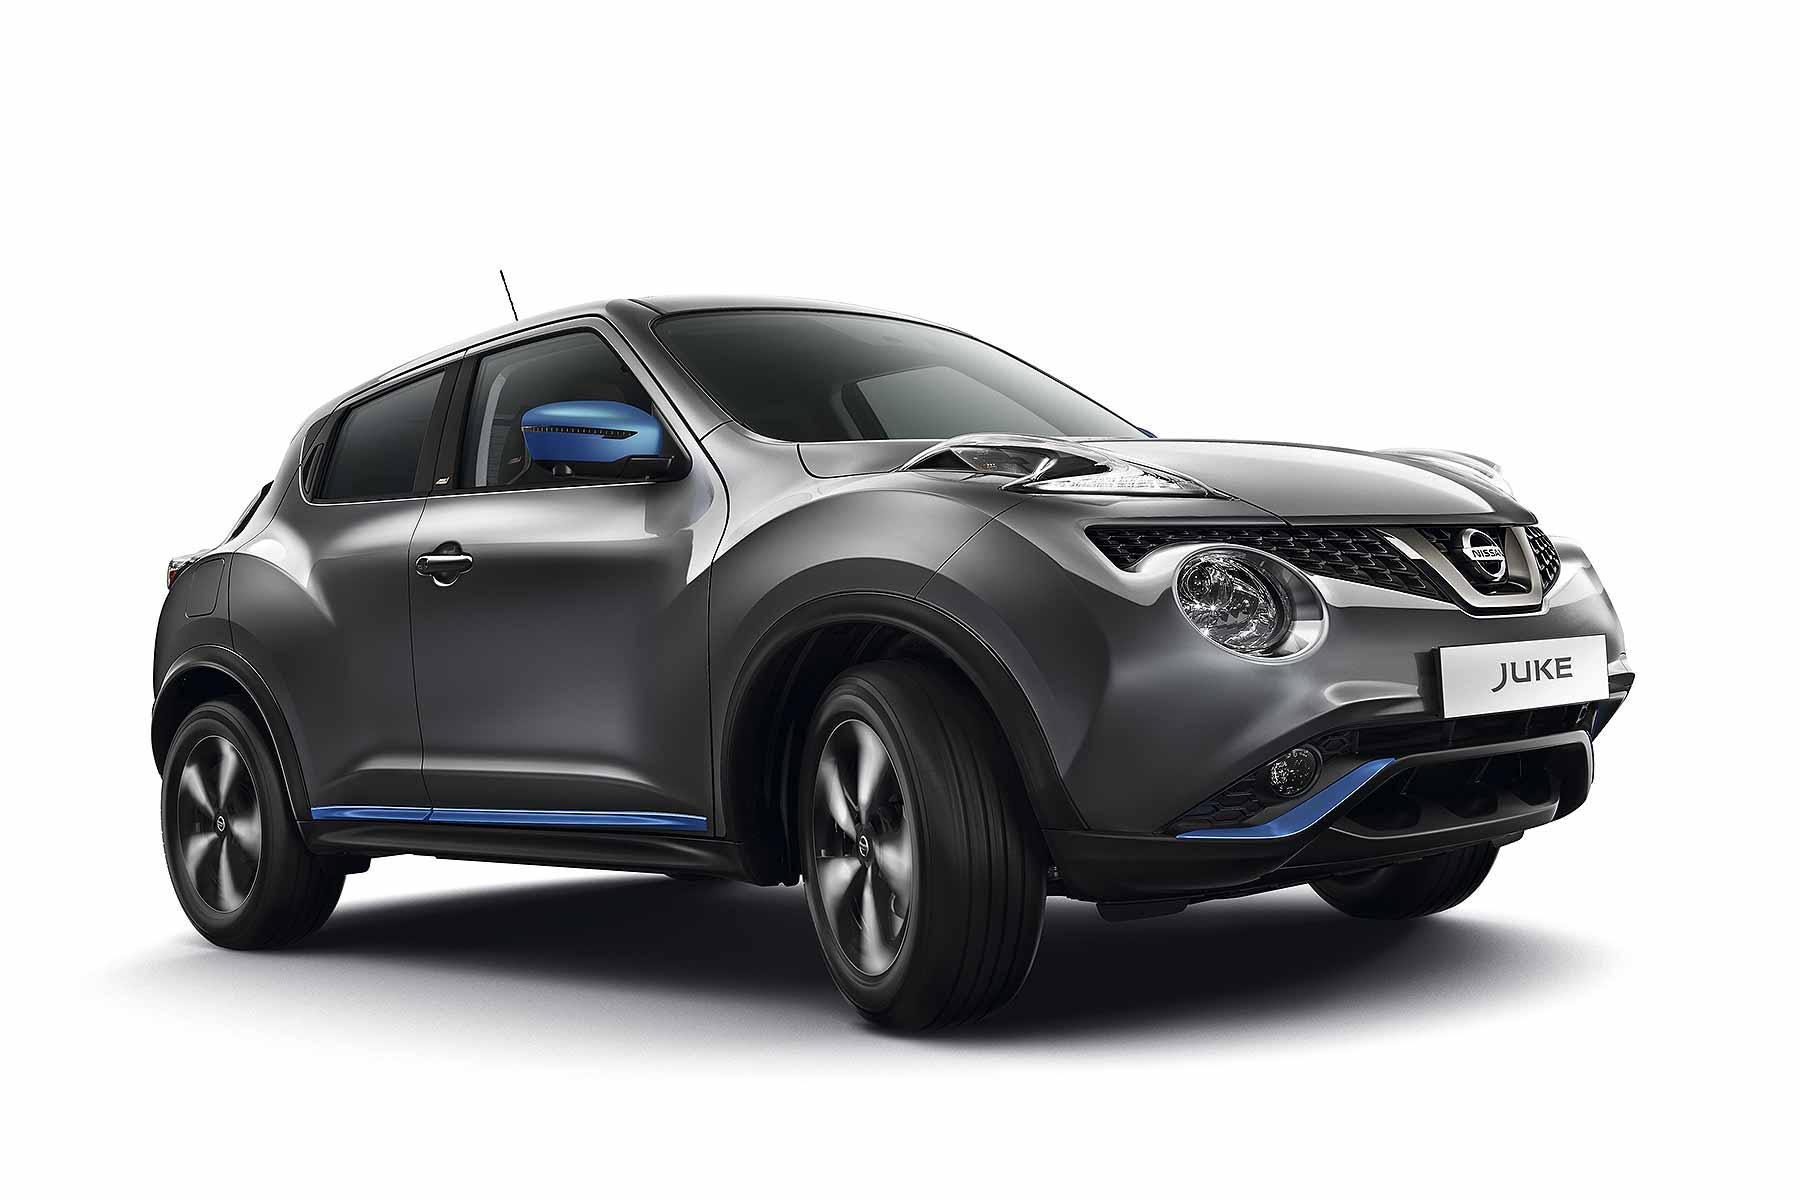 nissan juke revised for 2018 with added bose audio. Black Bedroom Furniture Sets. Home Design Ideas